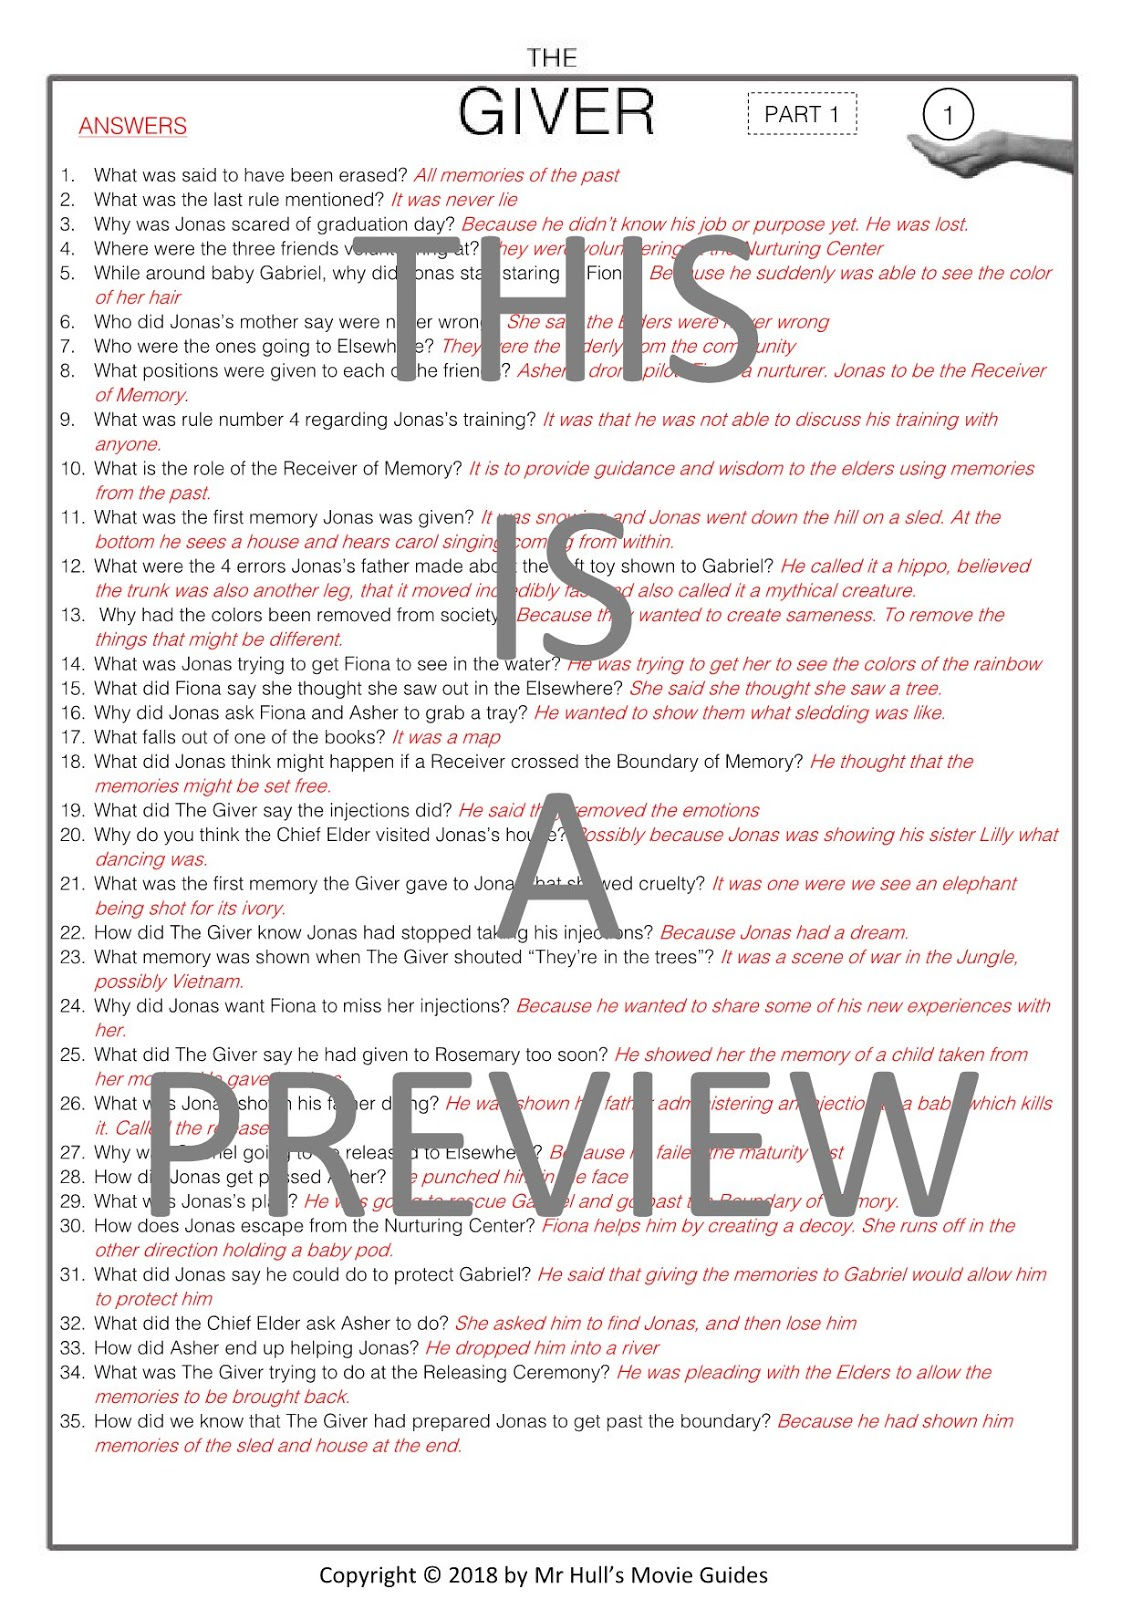 The Giver Movie Guide Activities